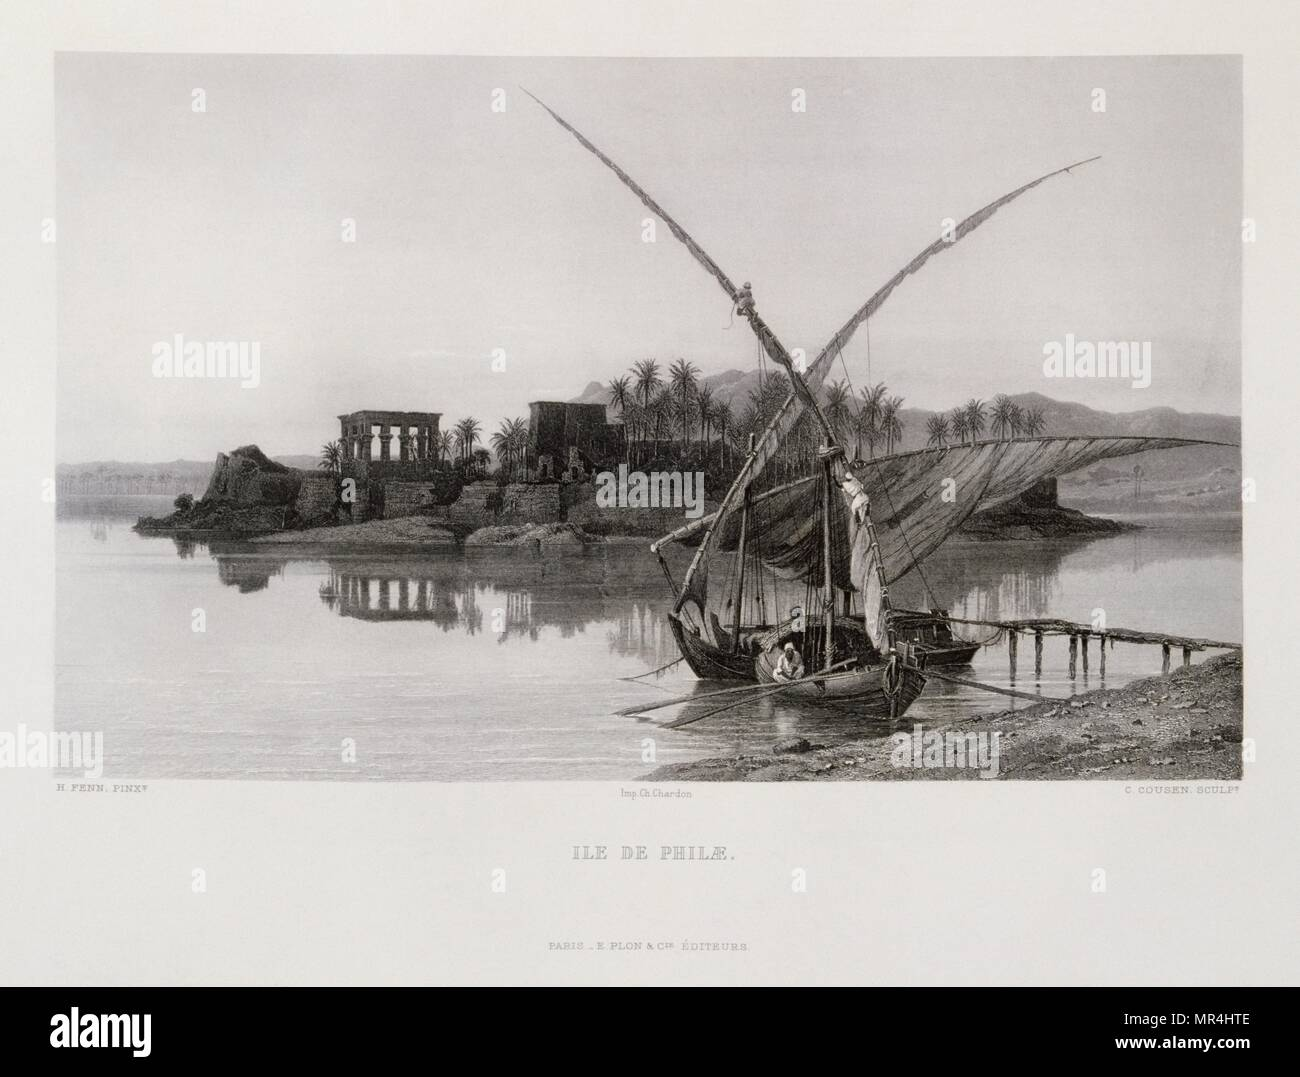 Engraving by Victor Guerin (1821 - 1891) depicting The island temple of Philae in Egypt. built during the Ptolemaic Kingdom it was the principal deity of the temple complex was Isis. 1875 Stock Photo